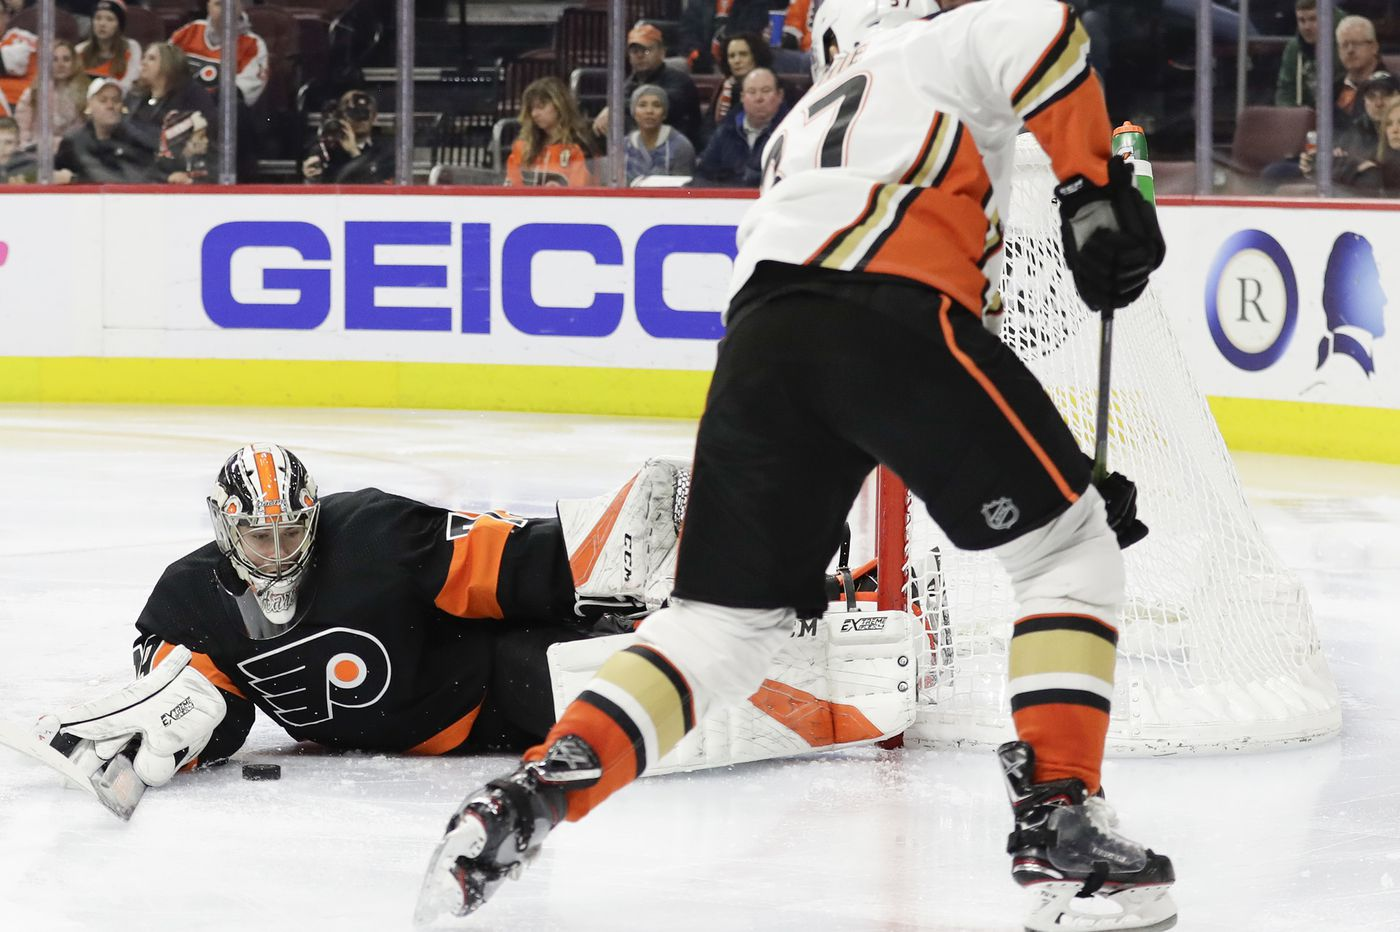 Surging Flyers face Penguins in key matchup as rookie goalie Carter Hart aims for an NHL record